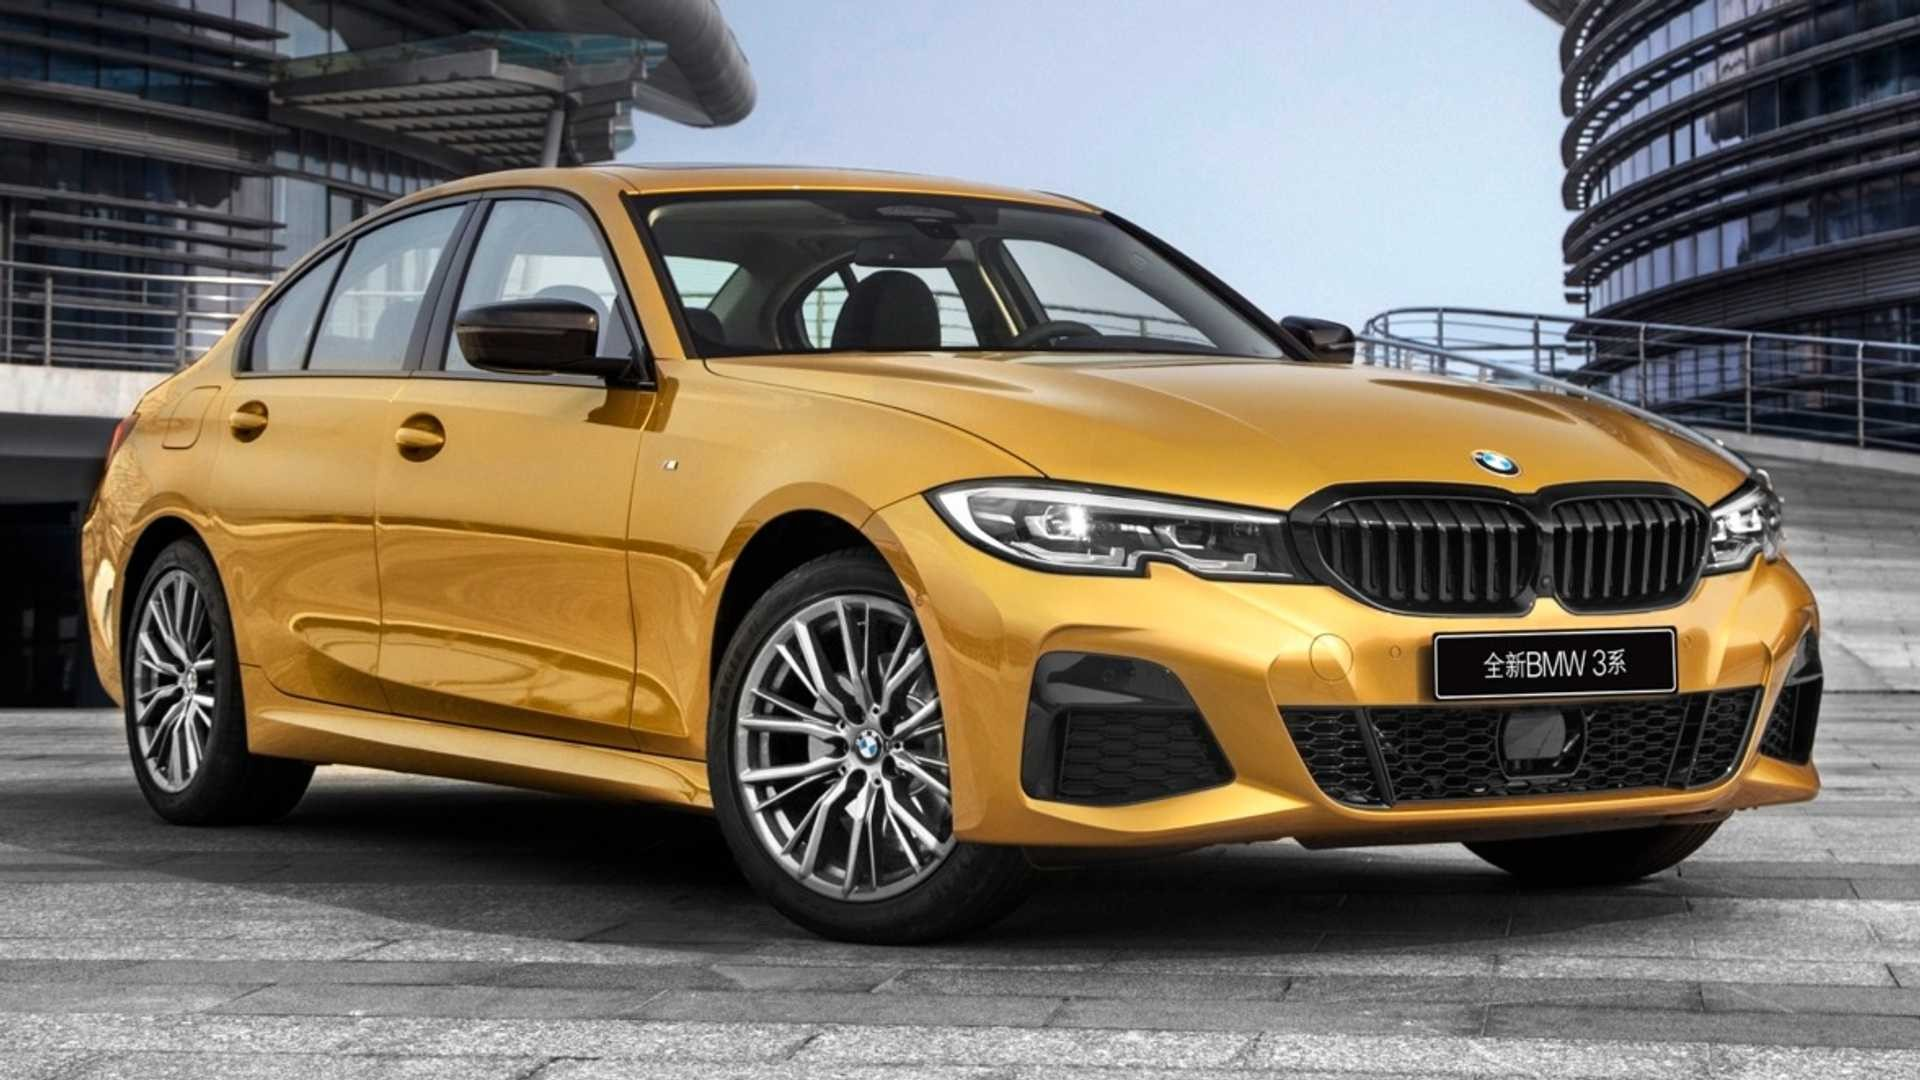 Index Of Wp Content Gallery 2019 Bmw 3 Series Lwb Long Wheelbase 2019